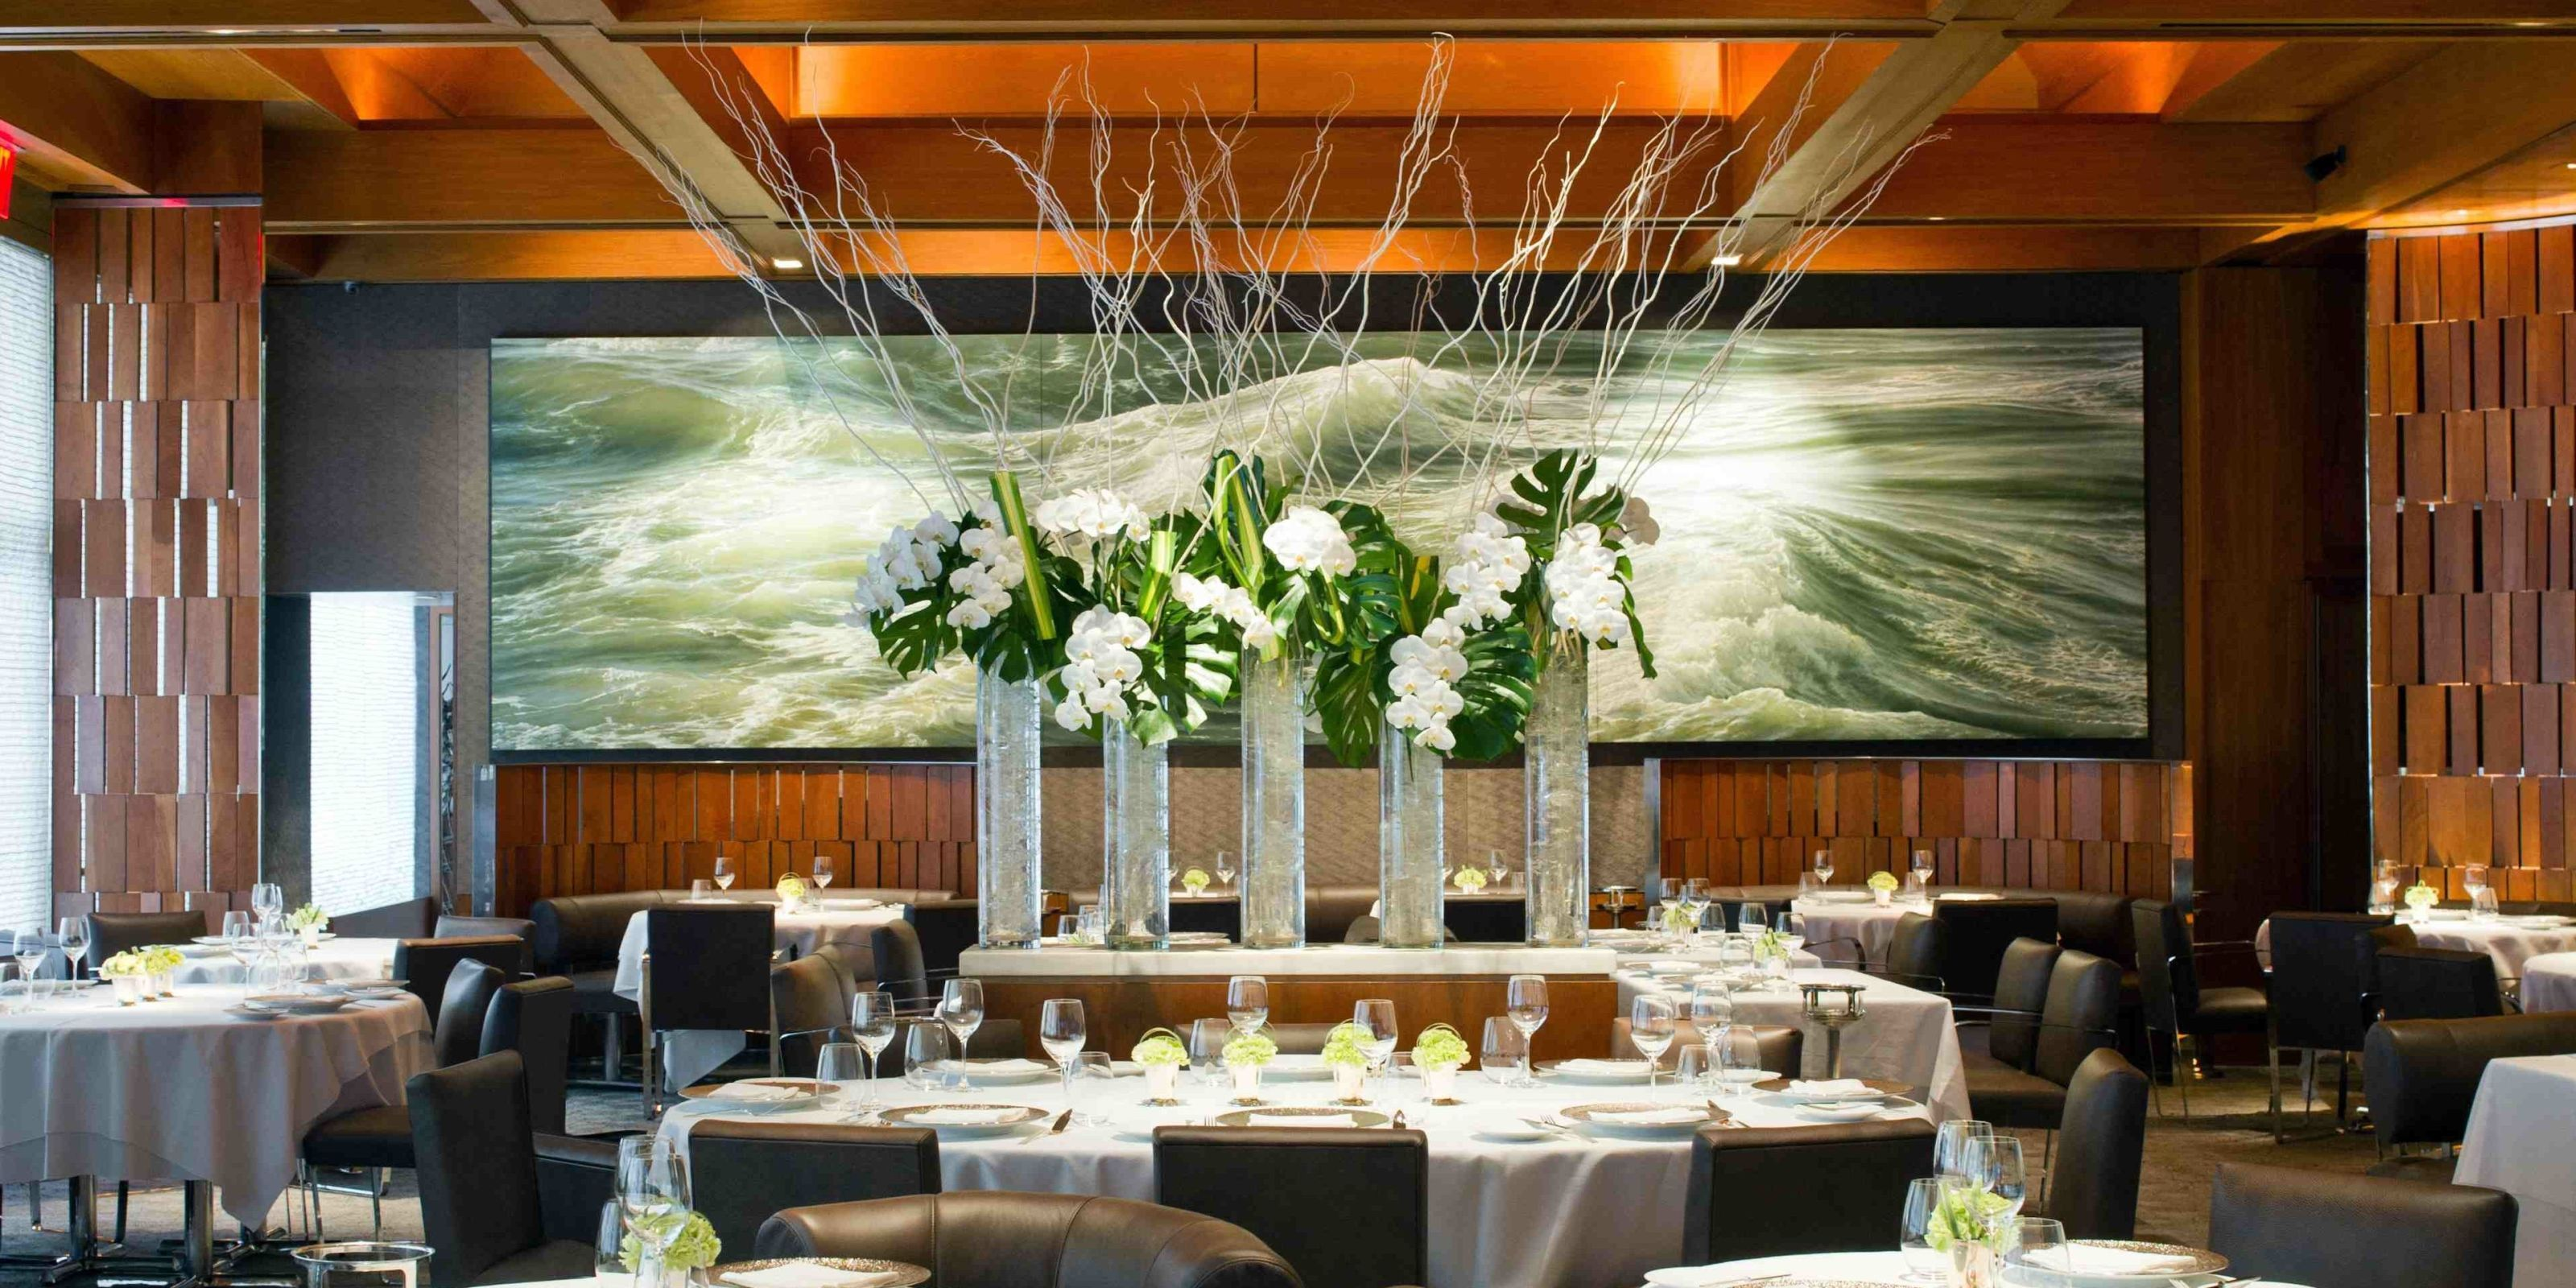 Good first date restaurant ideas for rehearsal dinner